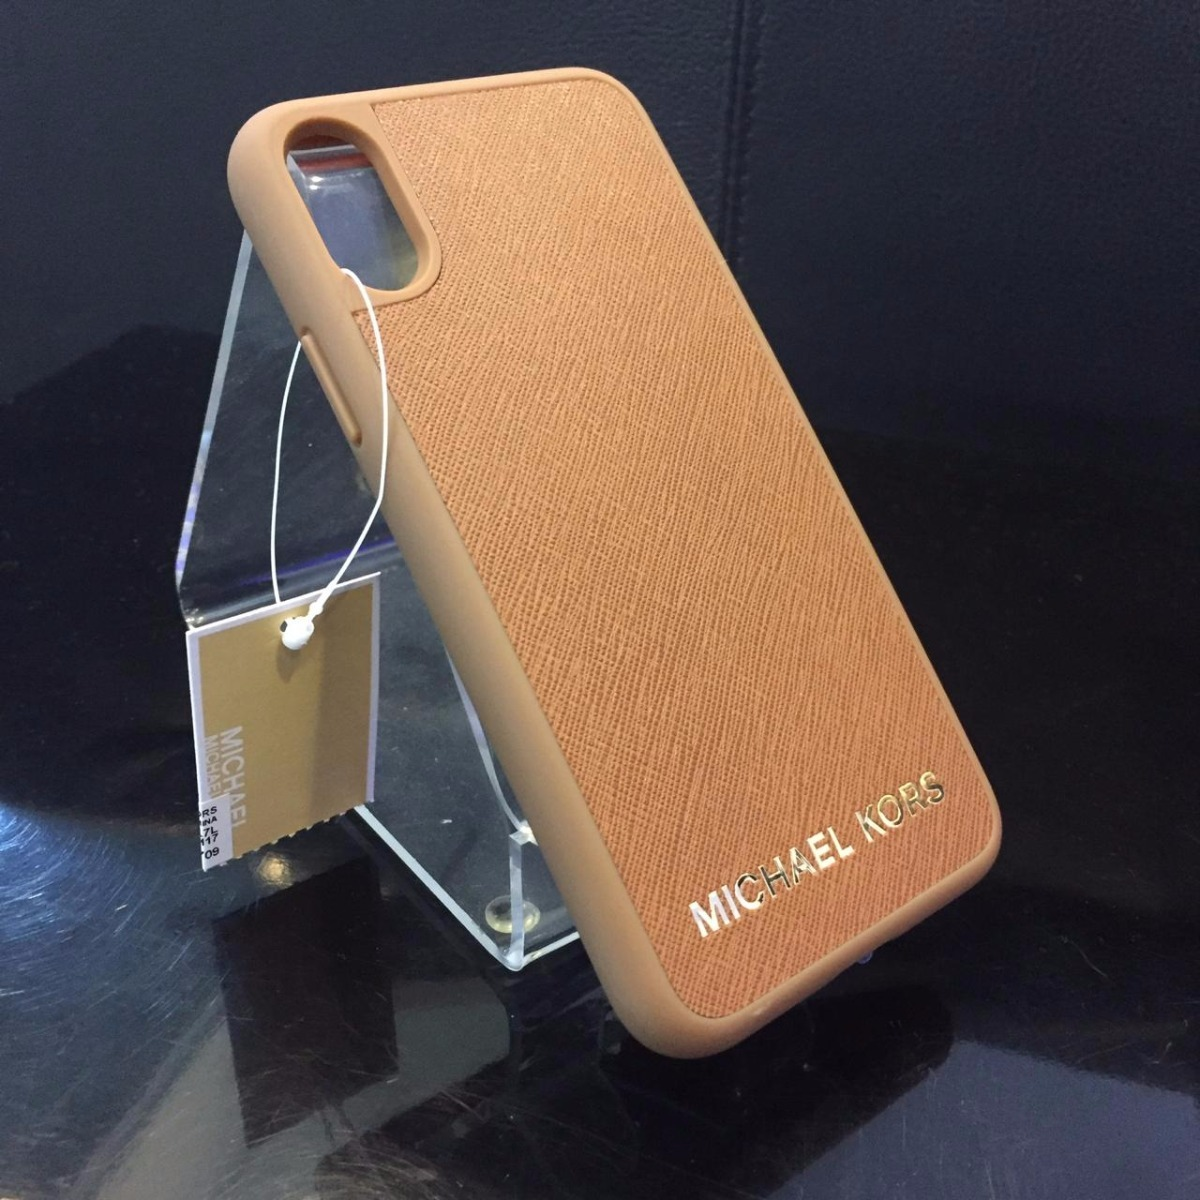 reputable site 3fcdf 8f112 Case Original Mk ( Michael Kors ) Couro - iPhone X / Xs